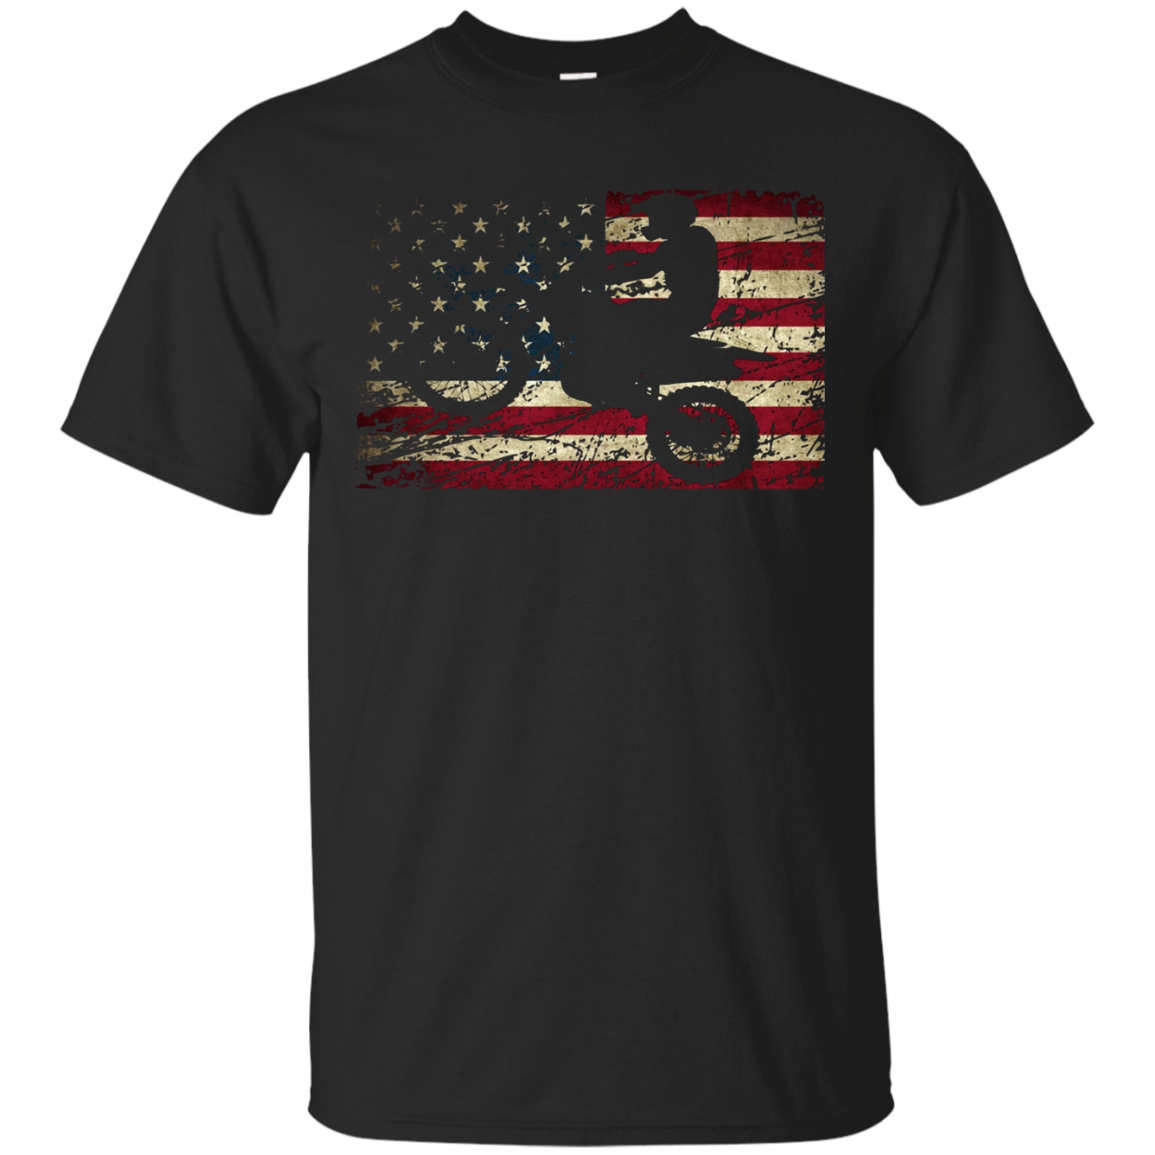 Dirt Bike USA Flag T-Shirt Motocross American Flag Shirt